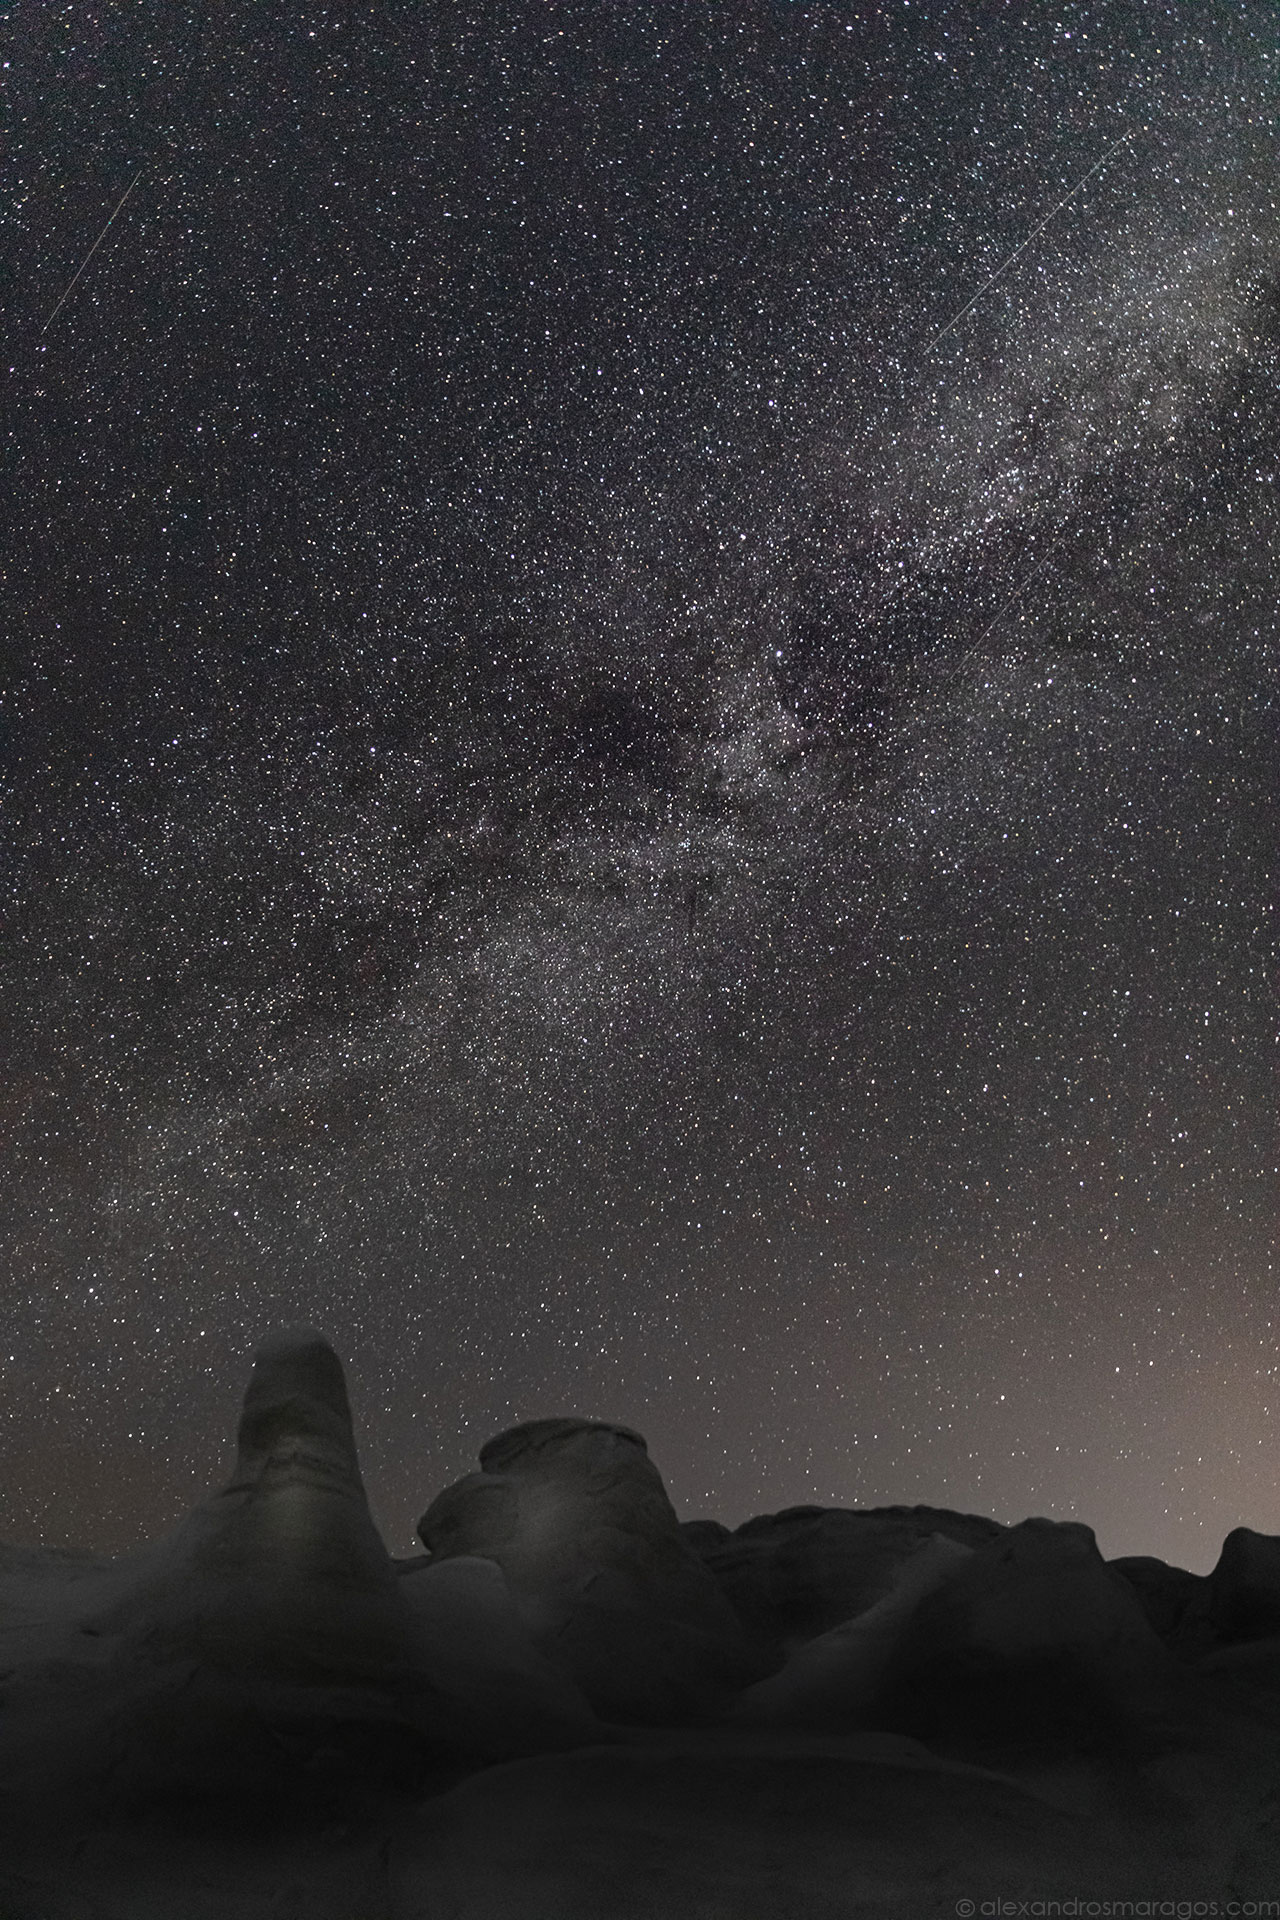 The Milky Way over Sarakiniko, Milos, Greece | © Alexandros Maragos